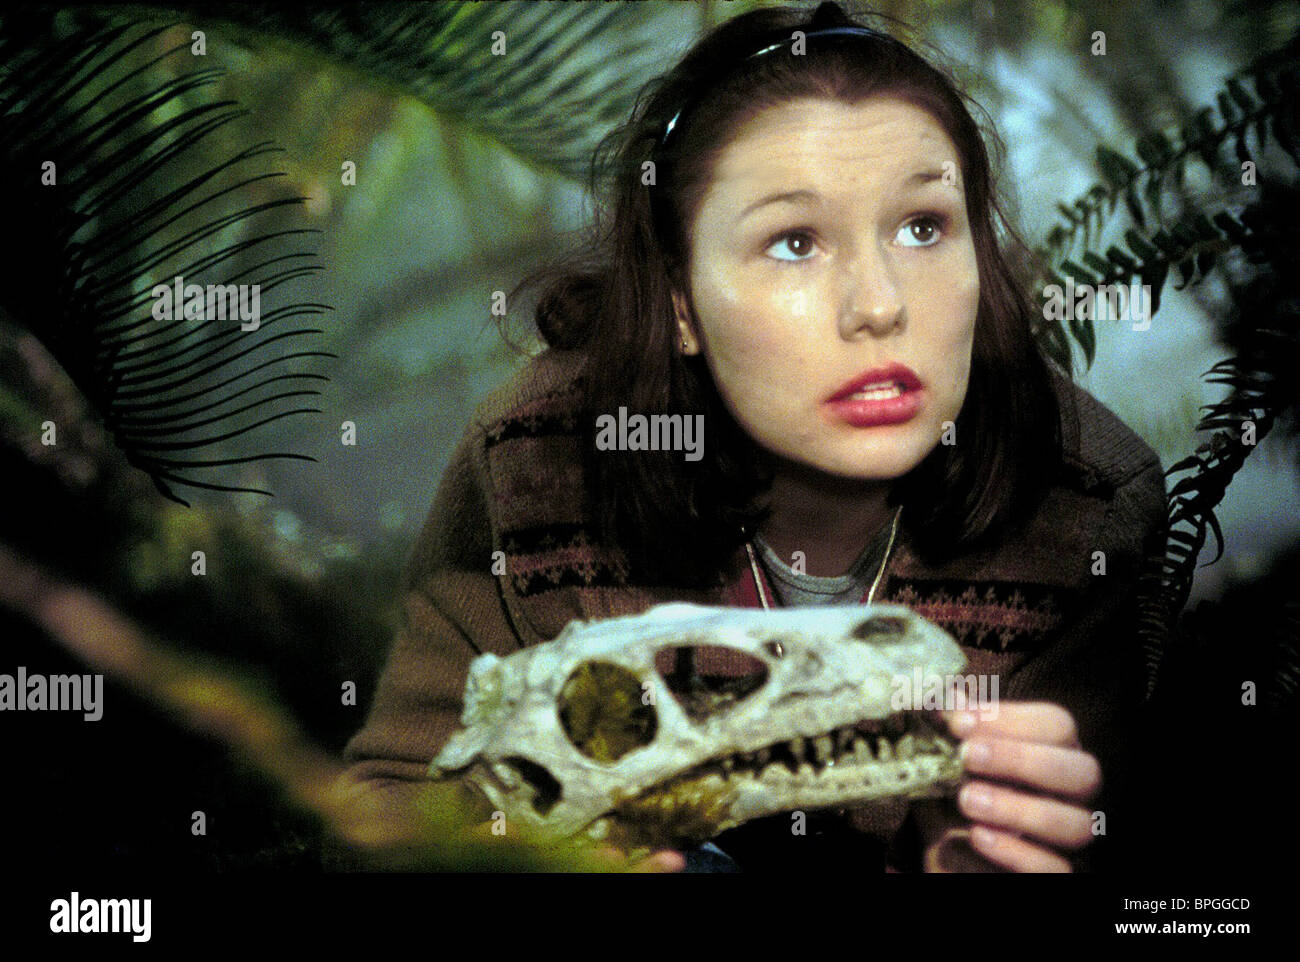 LIZ STRAUBER T-REX: BACK TO THE CRETACEOUS (1998) - Stock Image